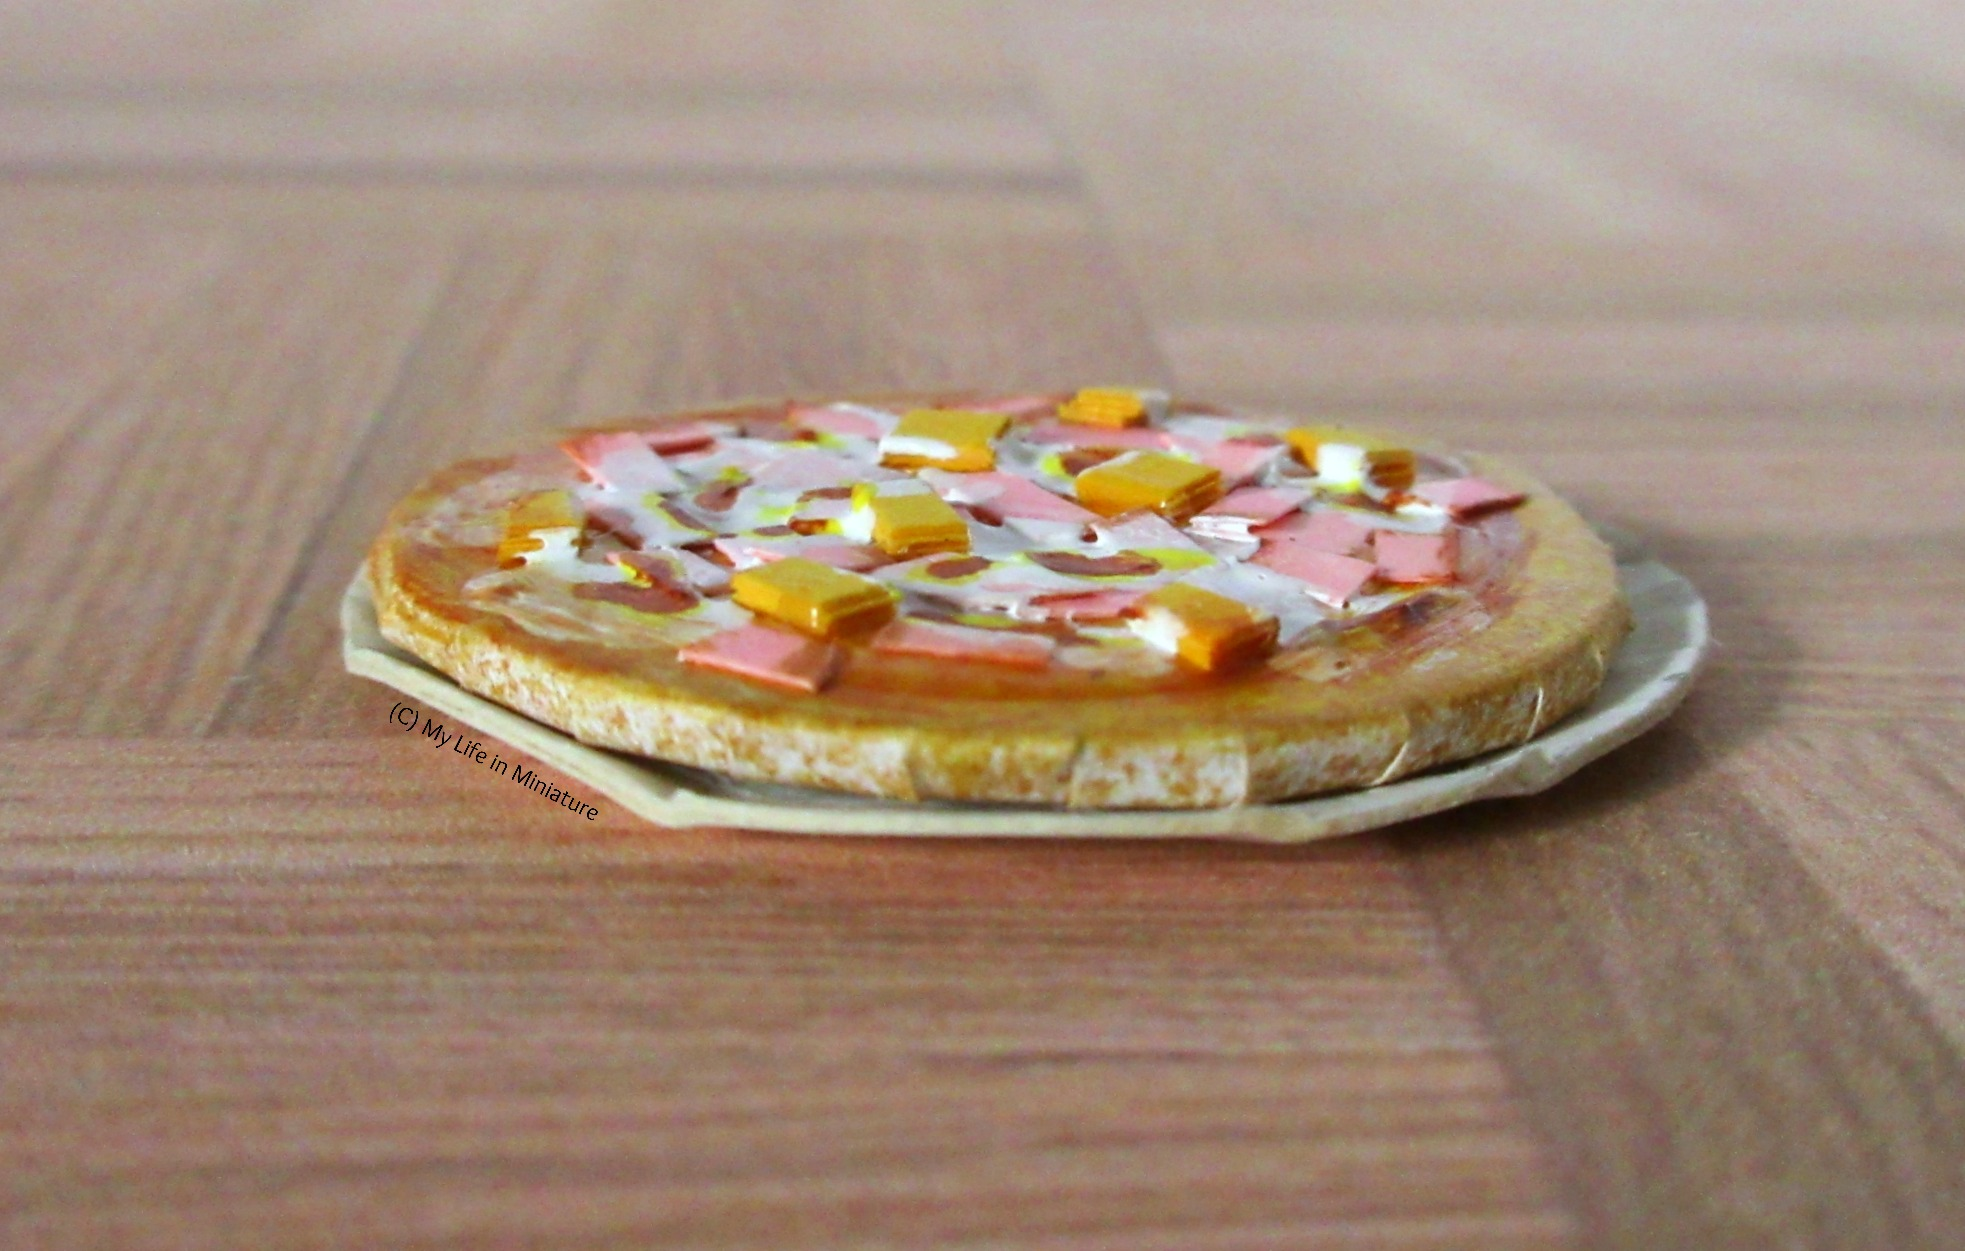 Close-up shot of the ham & pineapple pizza from the side, so the 3-D-ness of the toppings are visible. The pizza is on a plate, and sits on a wood parquet background.